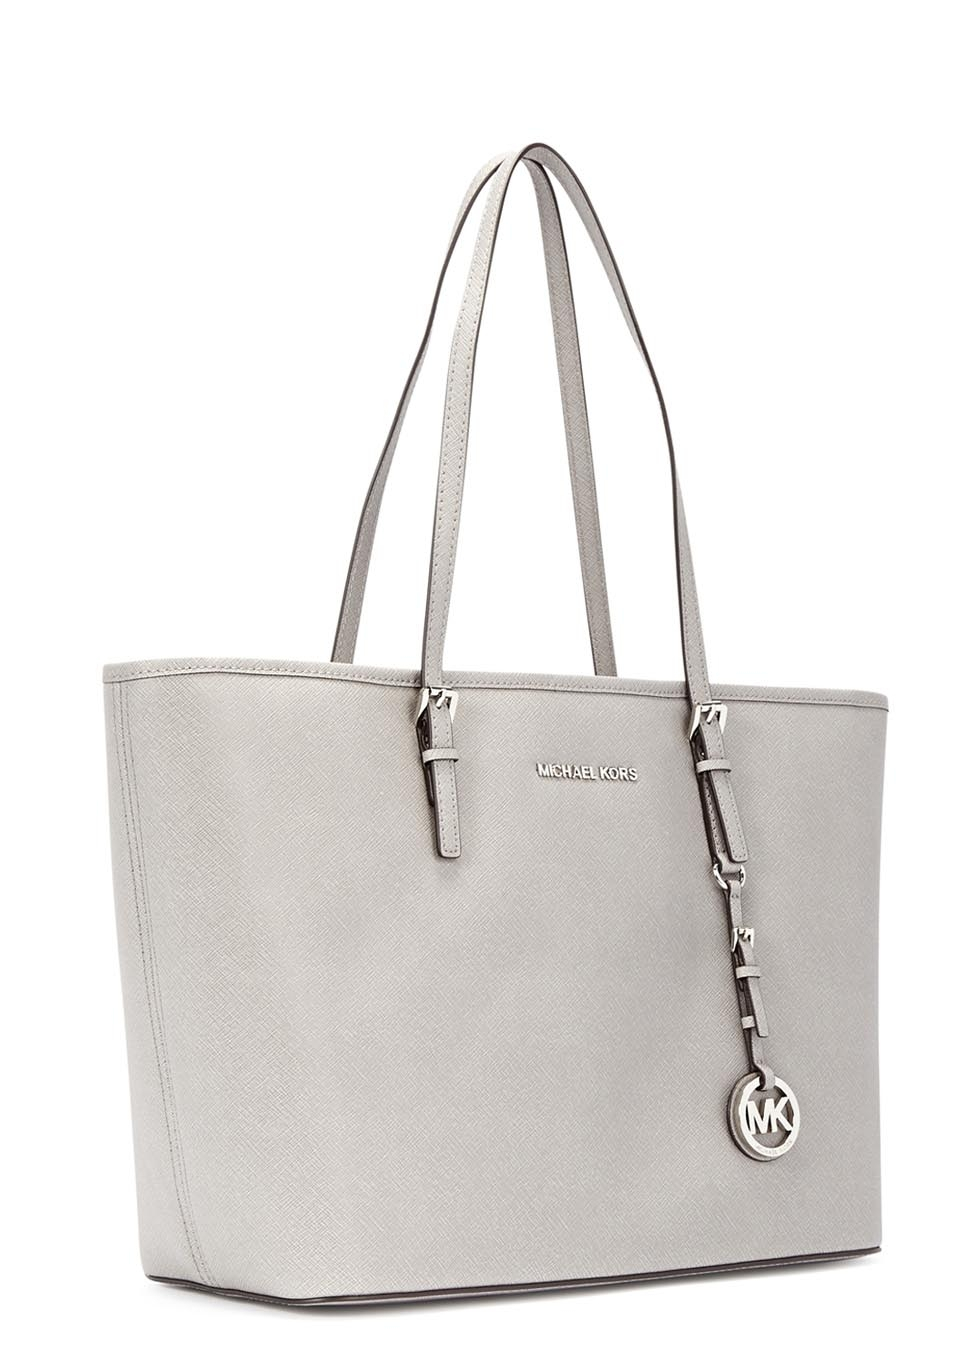 36be479856b5 Michael Kors Jet Set Dove Grey Saffiano Leather Tote in Gray - Lyst